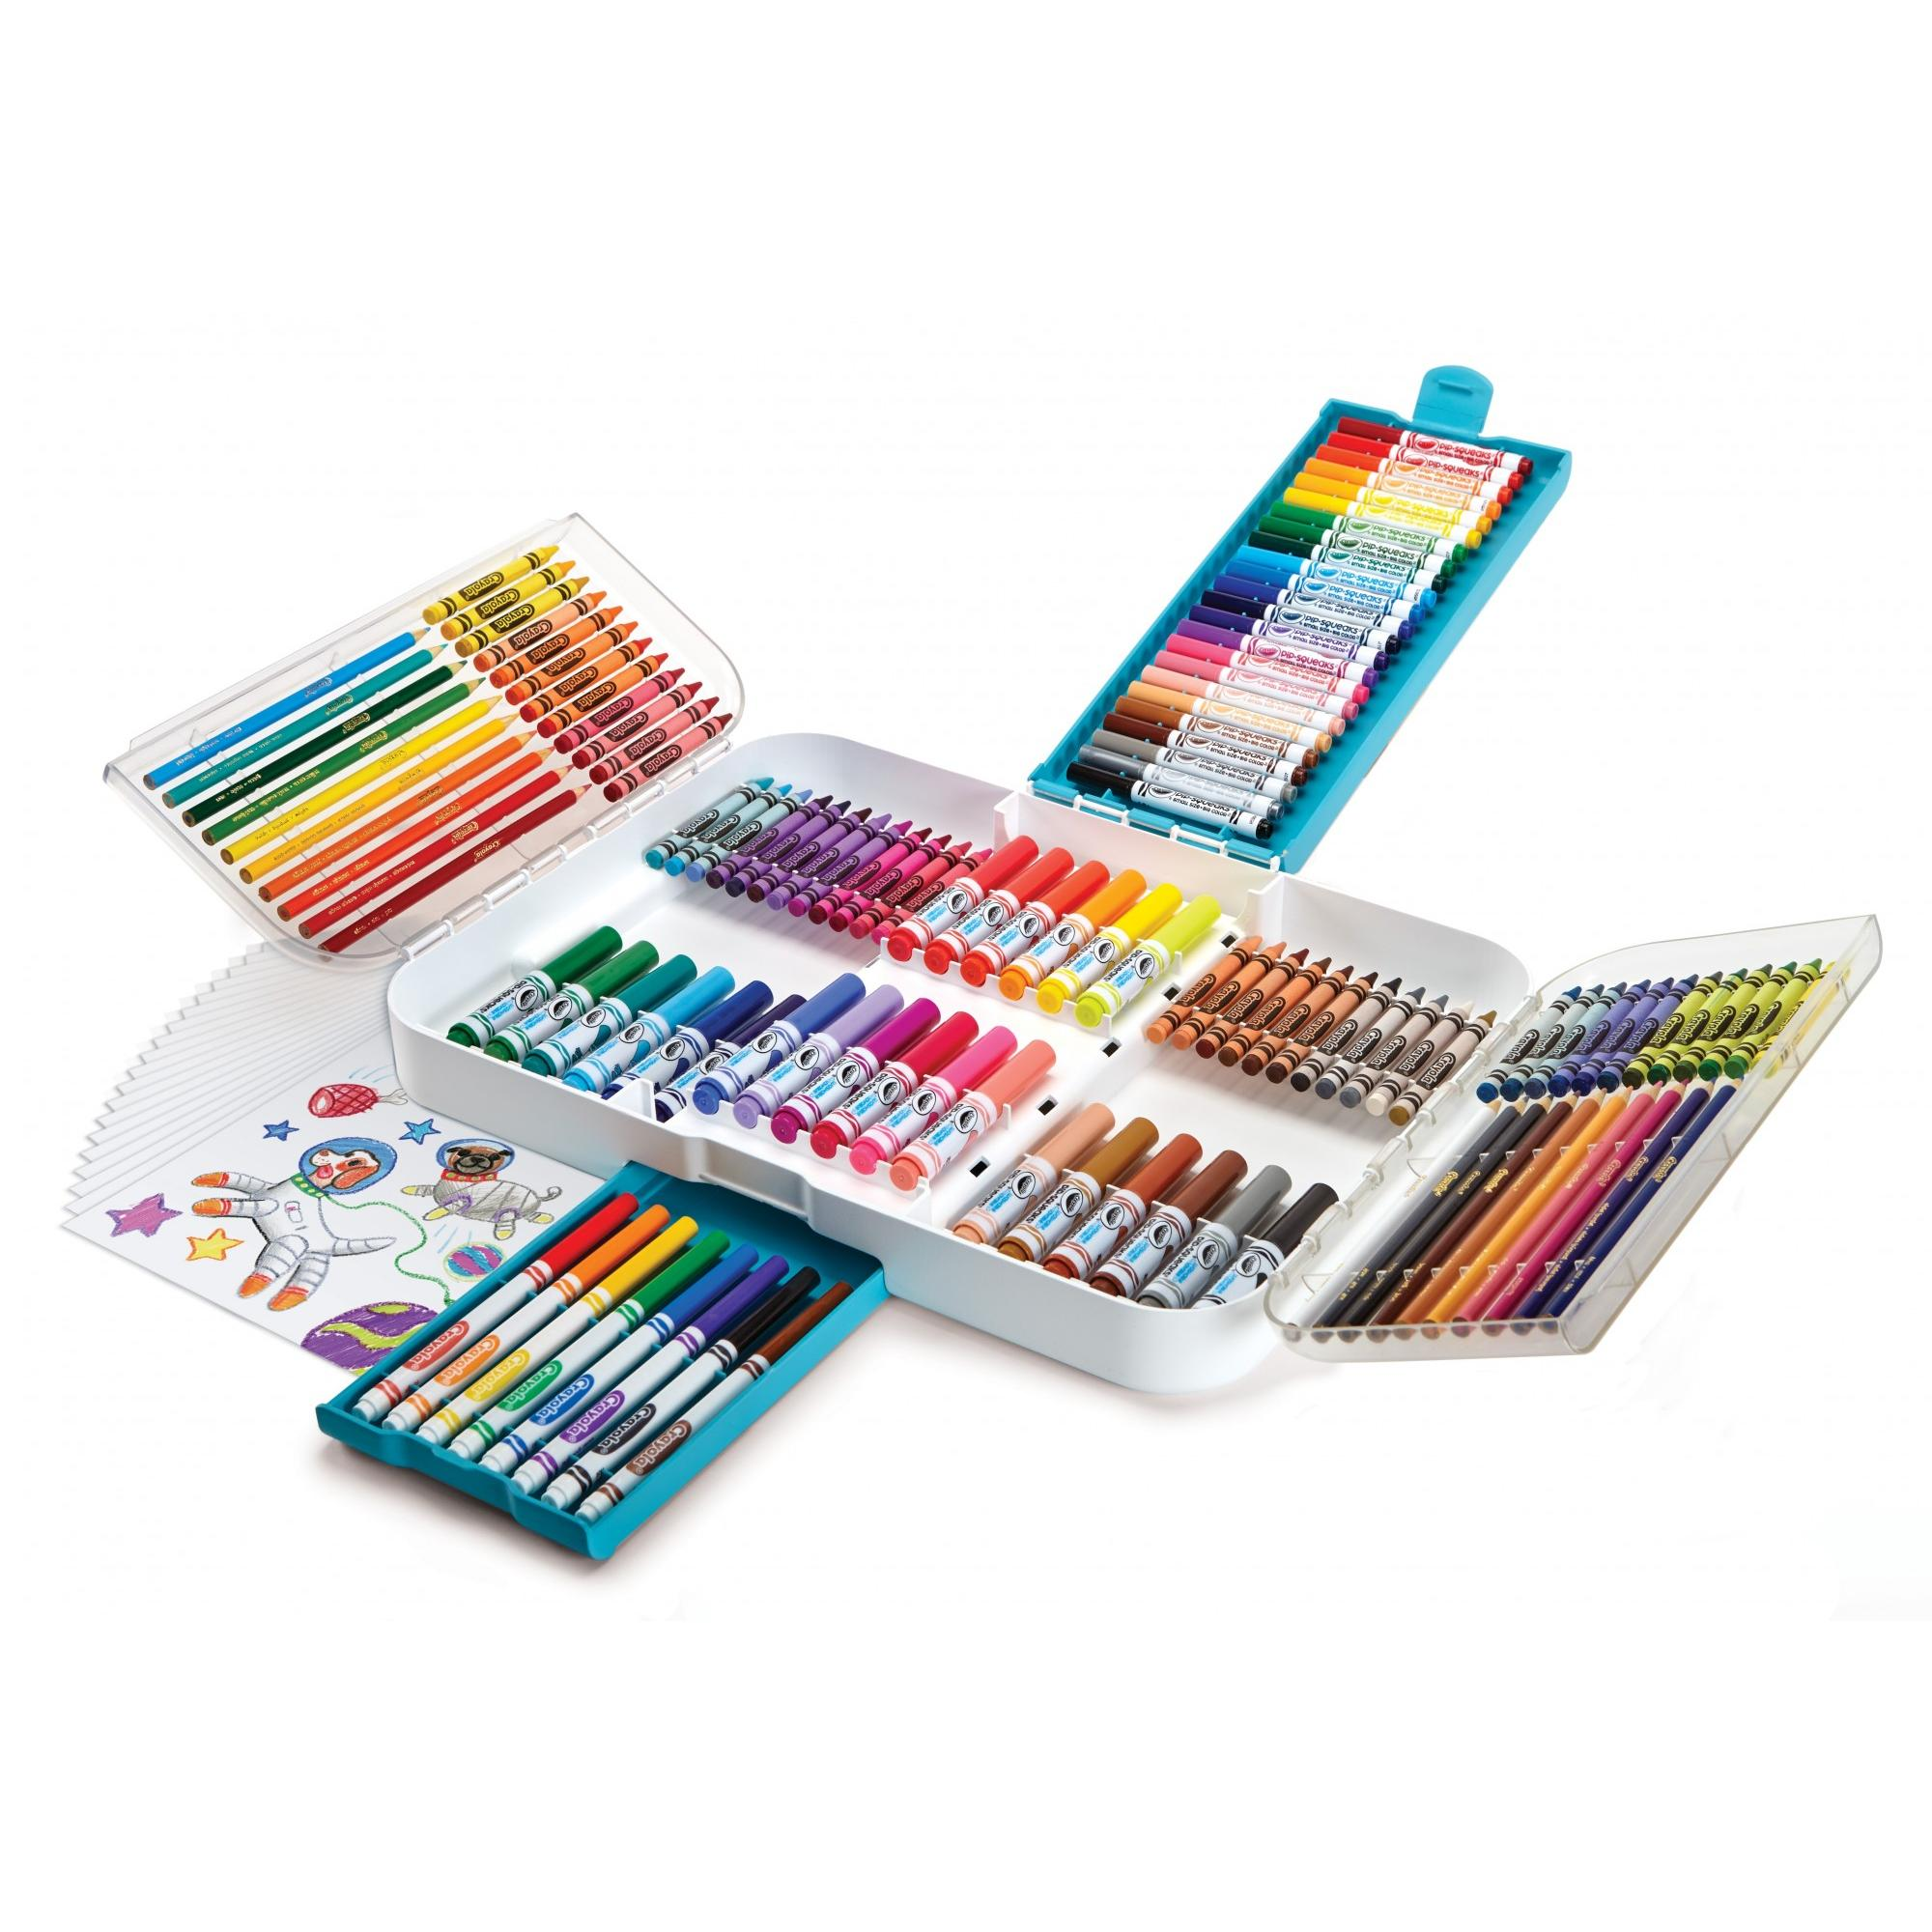 Crayola Ultra smART Case, 150 Pieces, Art Set, Gift for Kids & Adults by Crayola